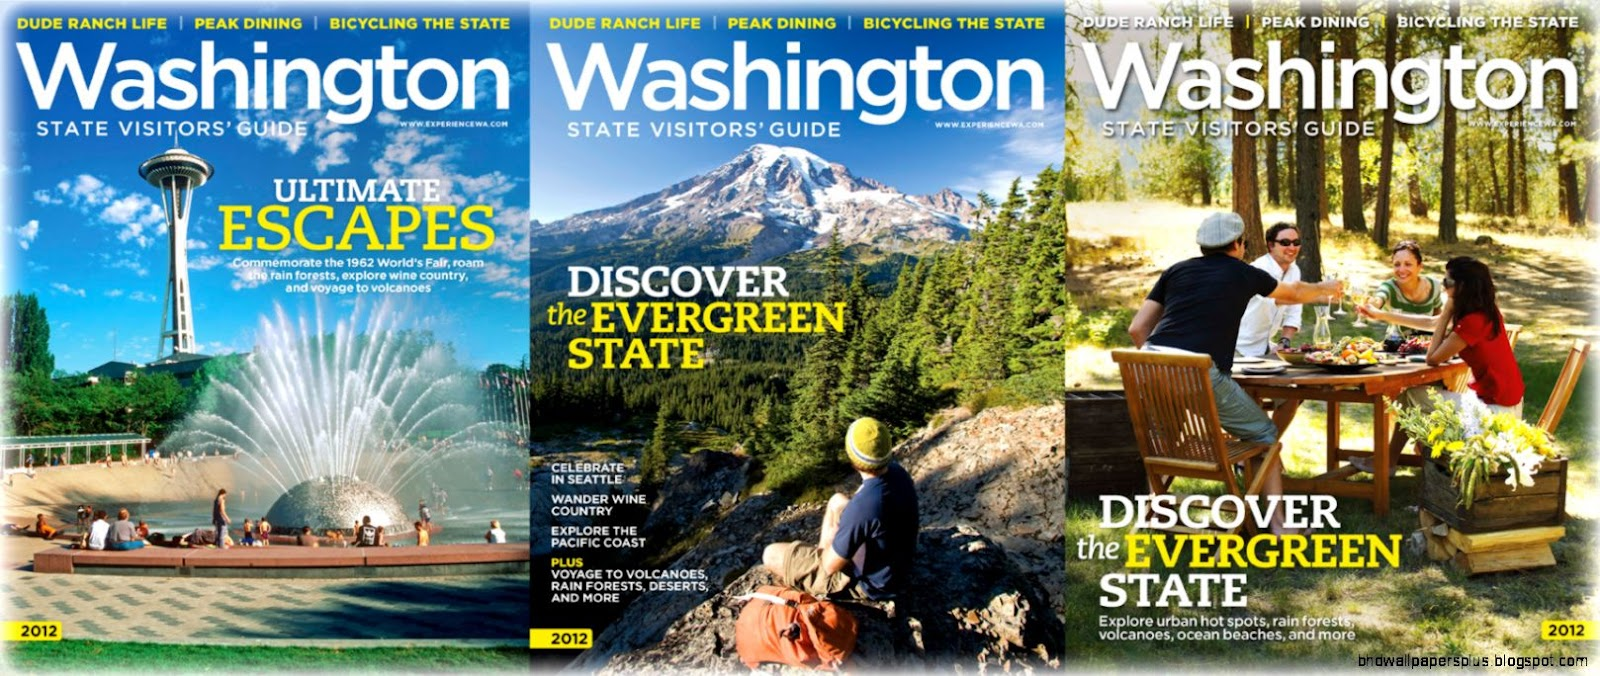 Washington State Visitors Guide  Ground breaking Partnership